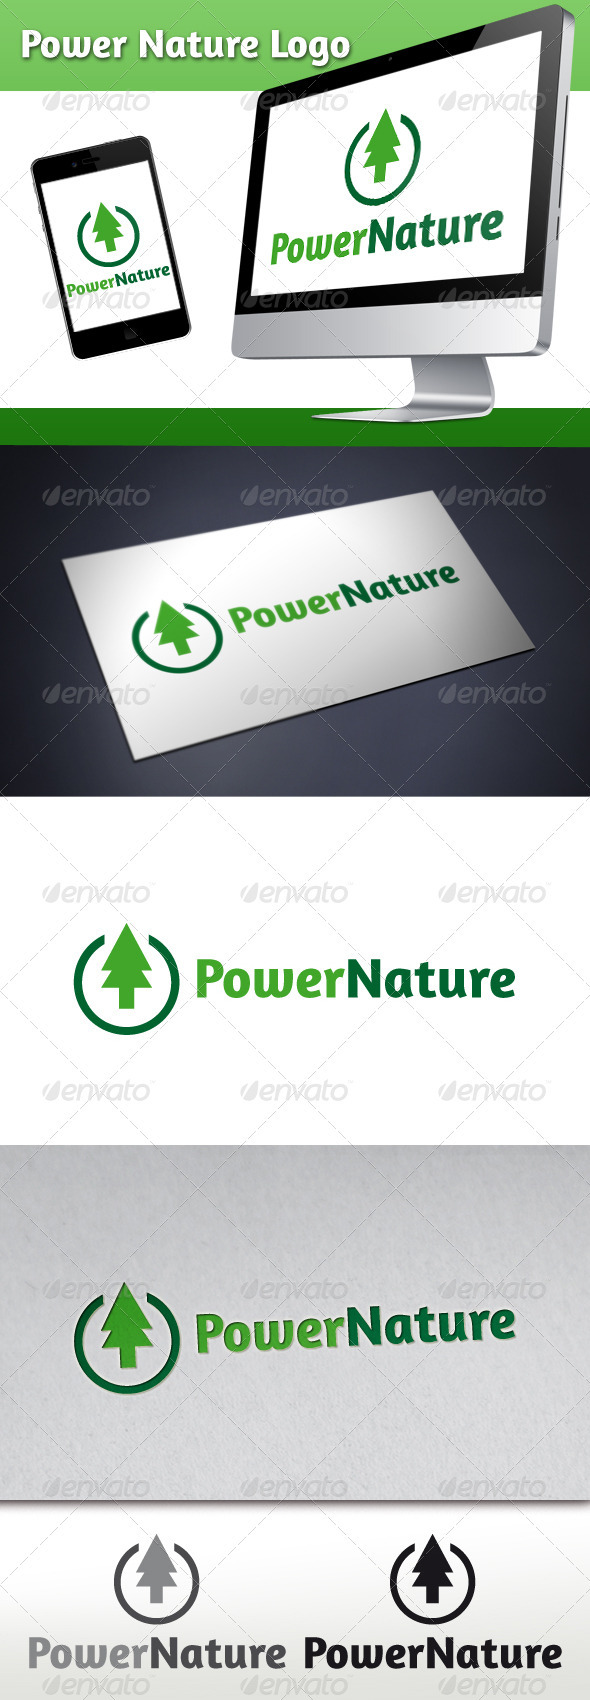 Power Nature Logo - Nature Logo Templates